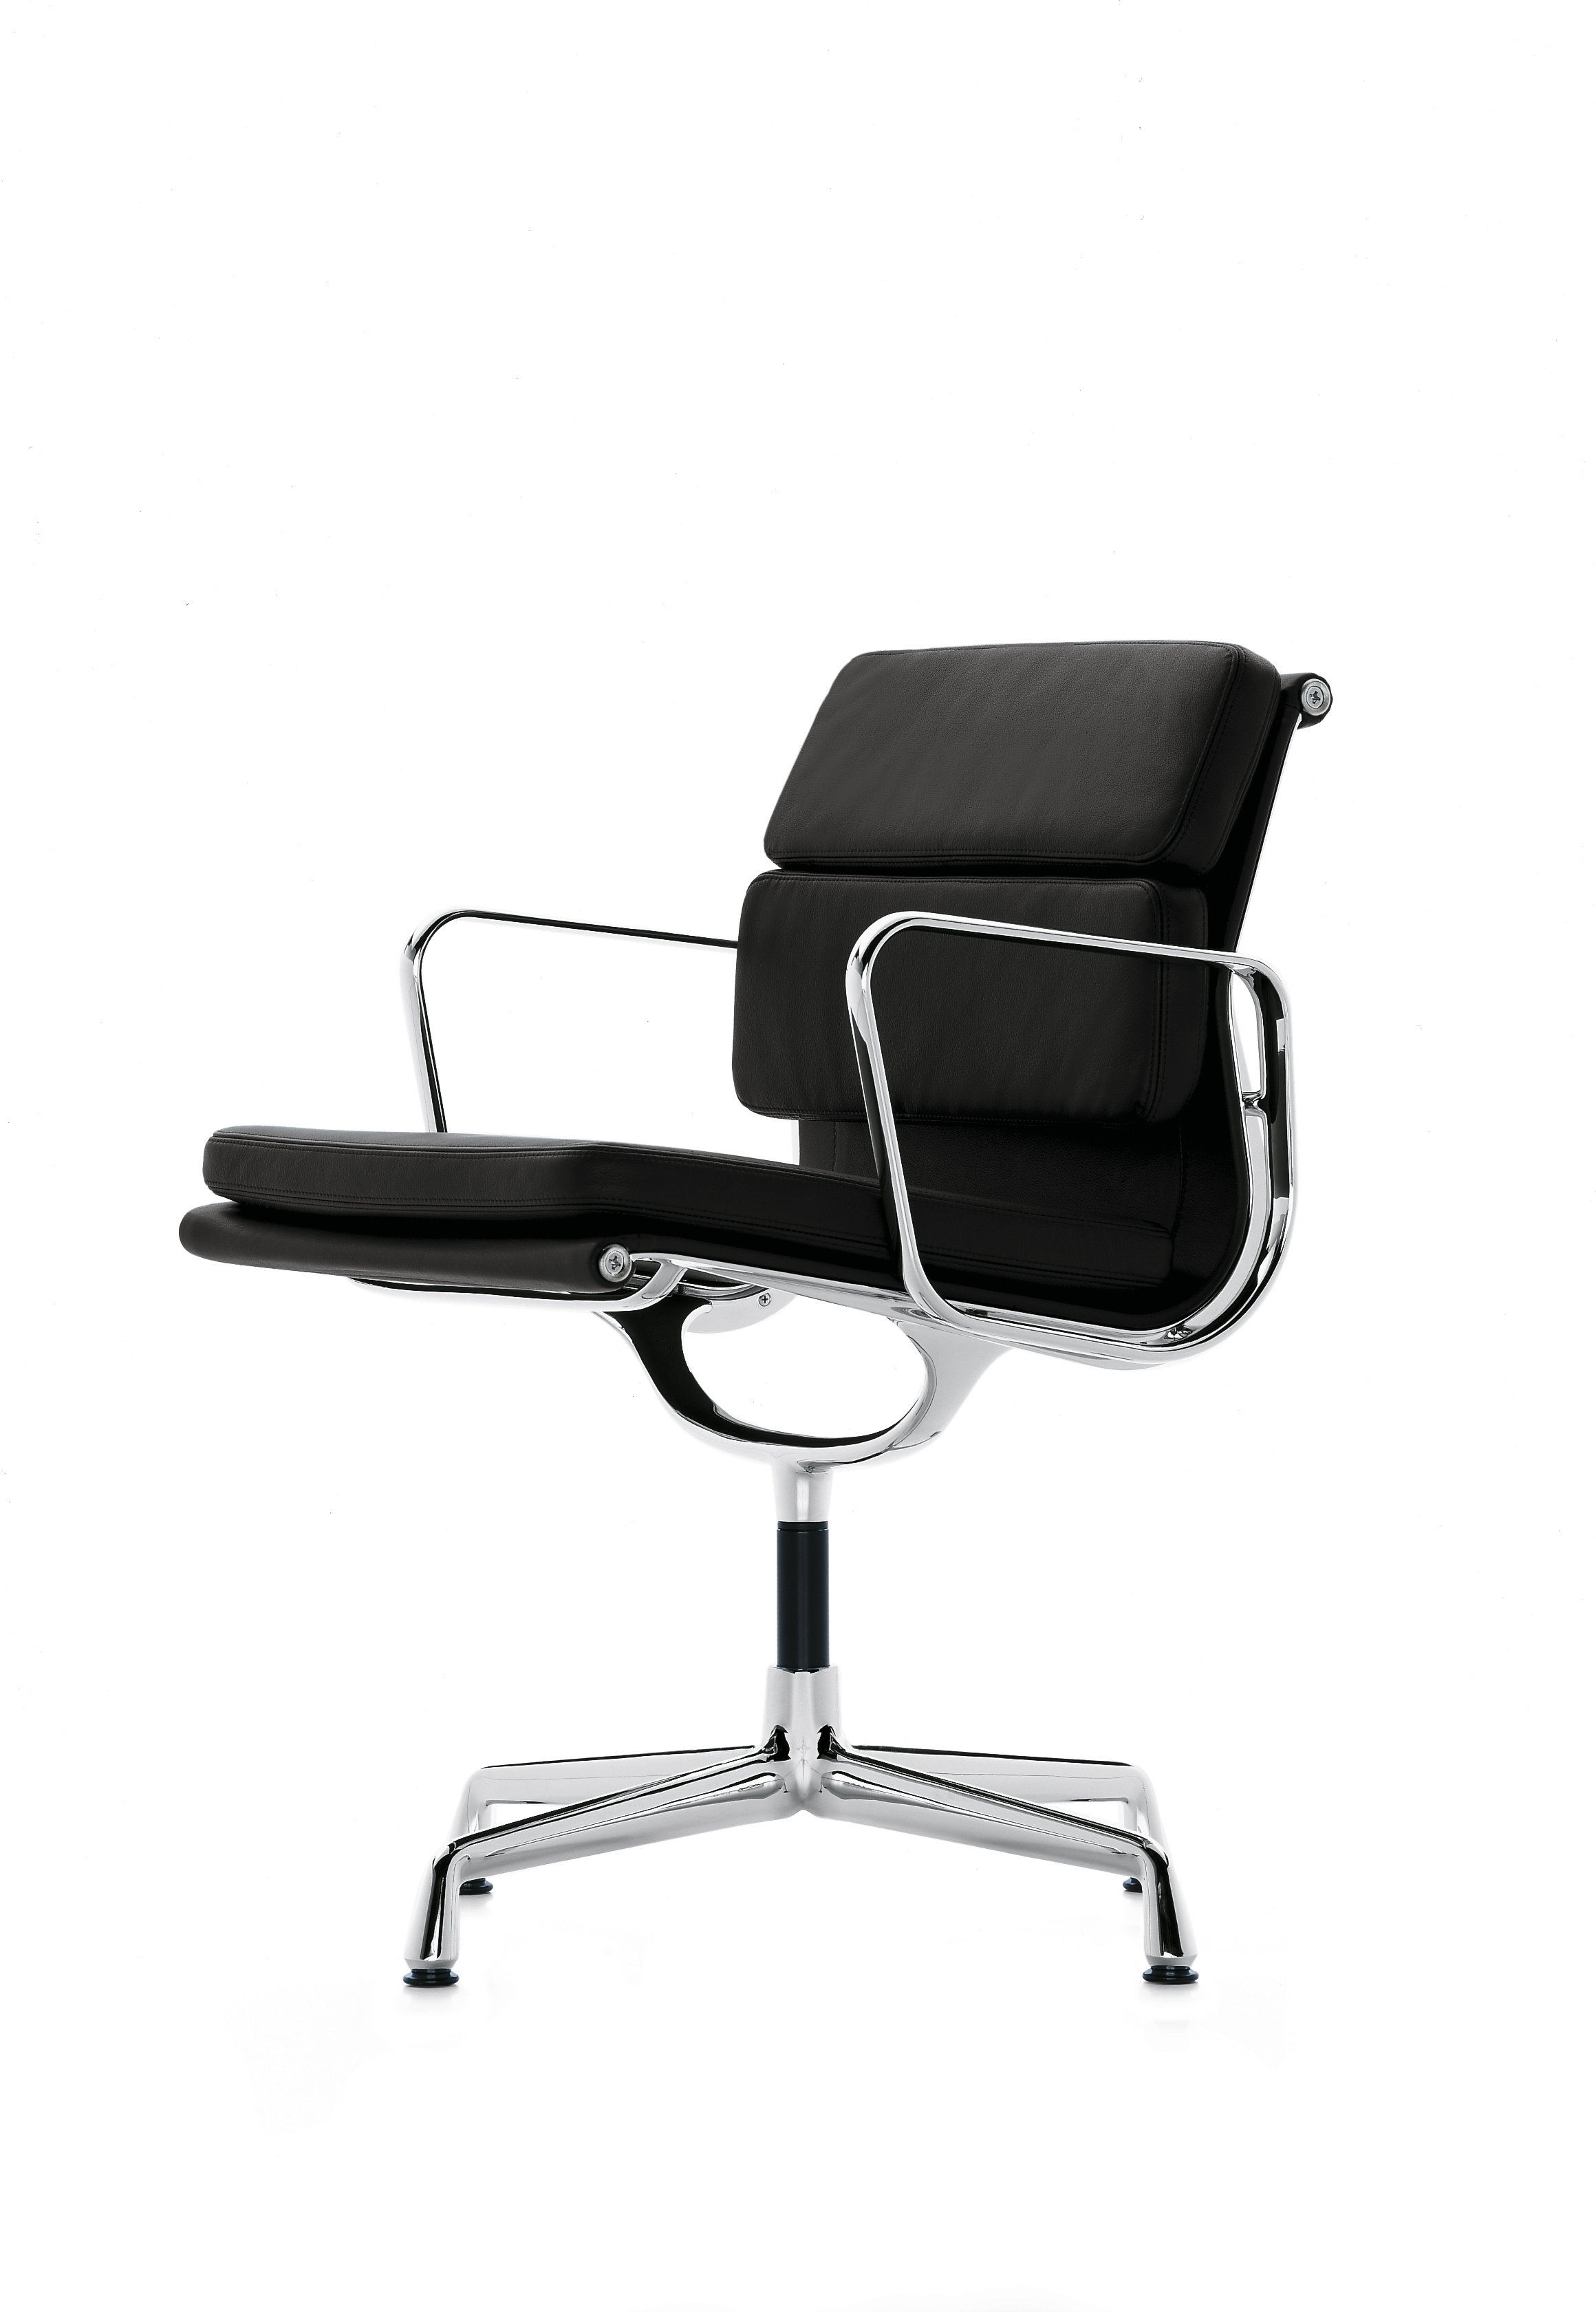 vitra aluminium chair soft pad ea 208 shop i design. Black Bedroom Furniture Sets. Home Design Ideas